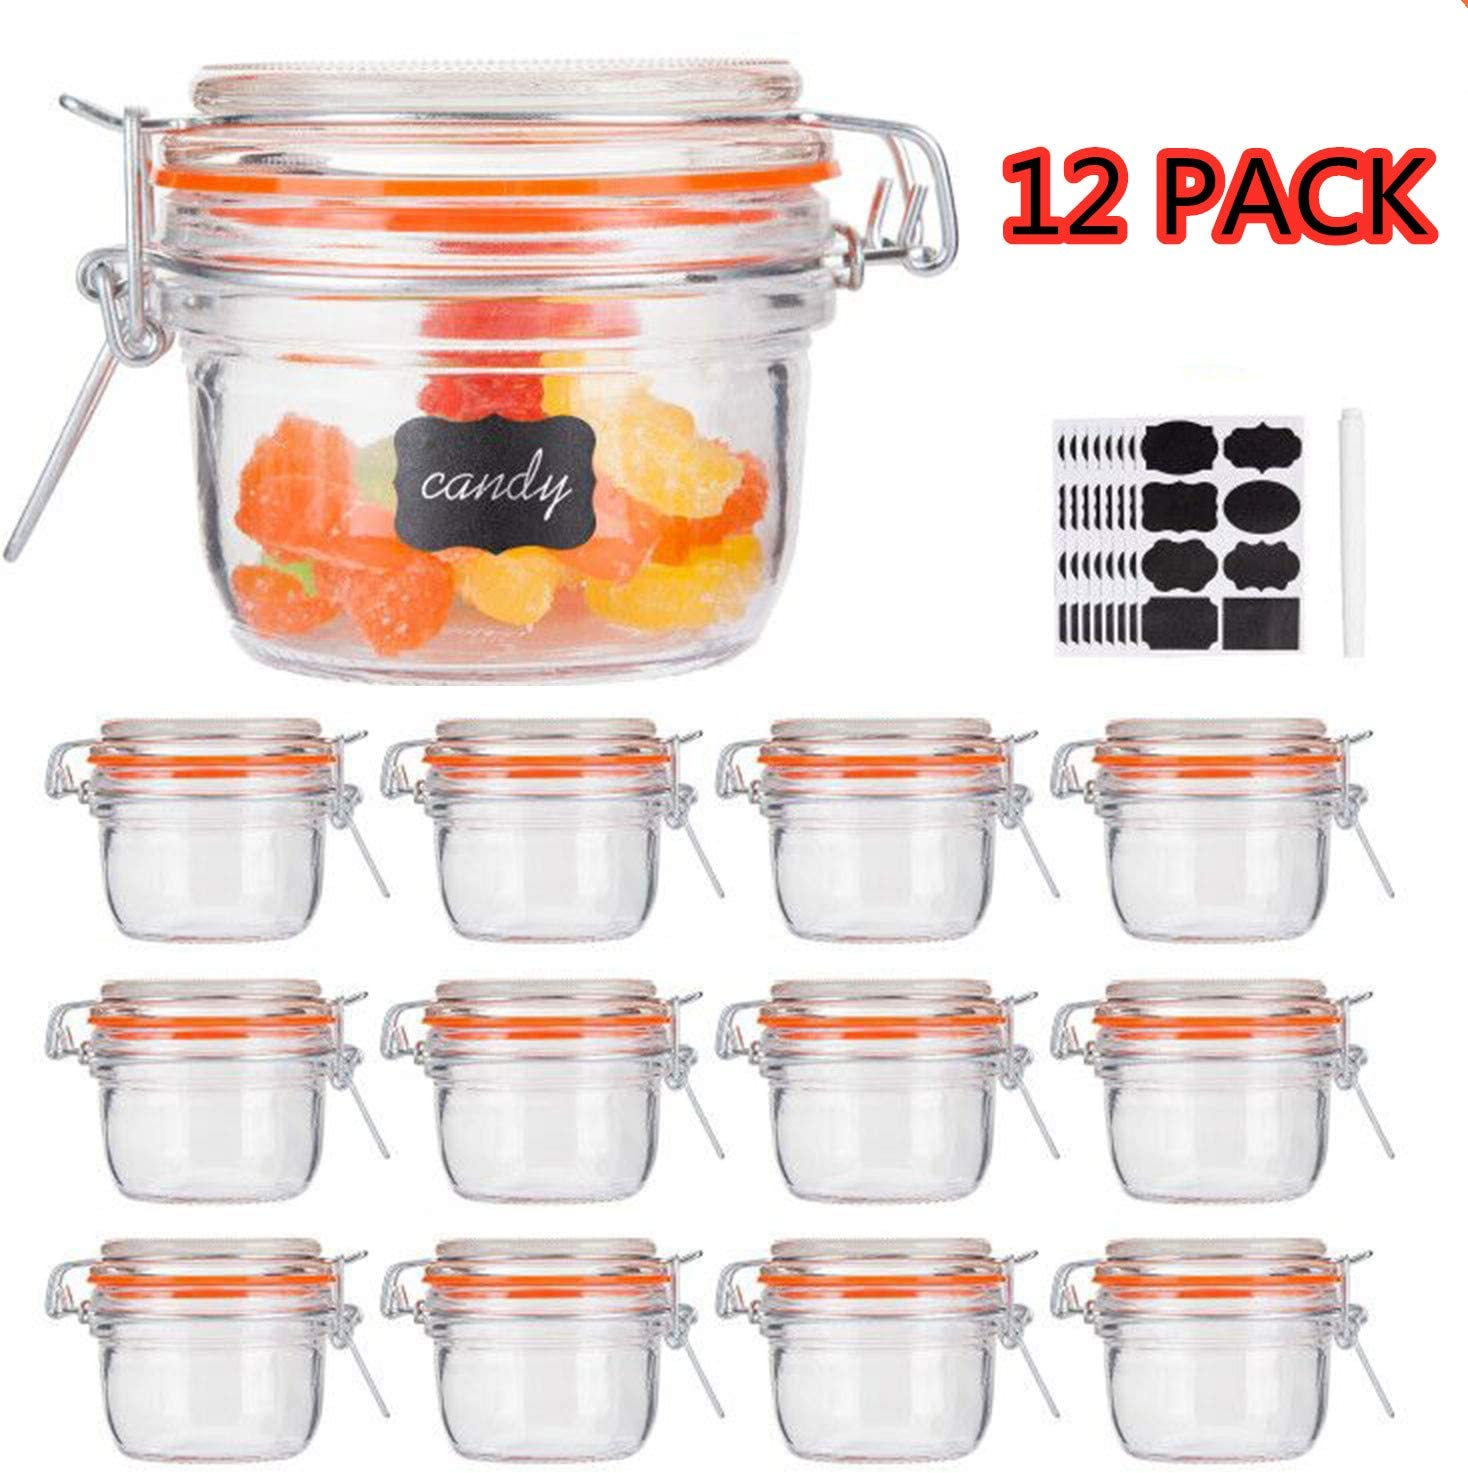 Small Glass Jars With Airtight Lids,Encheng Glass Spice Jars 5 oz,Maosn Jars With Leak Proof Rubber Gasket 150ml,Glass Storage Containers With Hinged Lid,Kitchen Canisters 12 Pack …